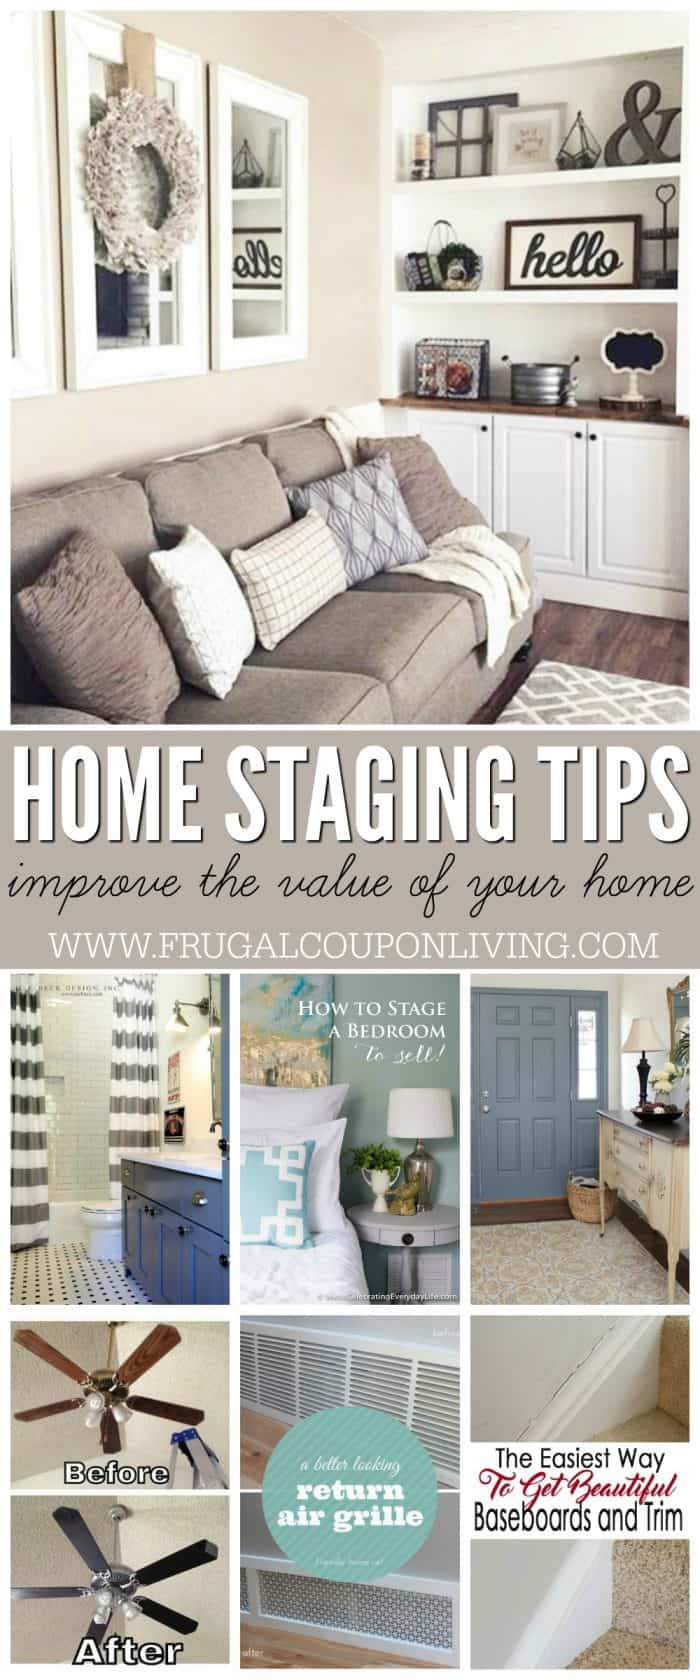 home-staging-tips-collage-frugal-coupon-living-long